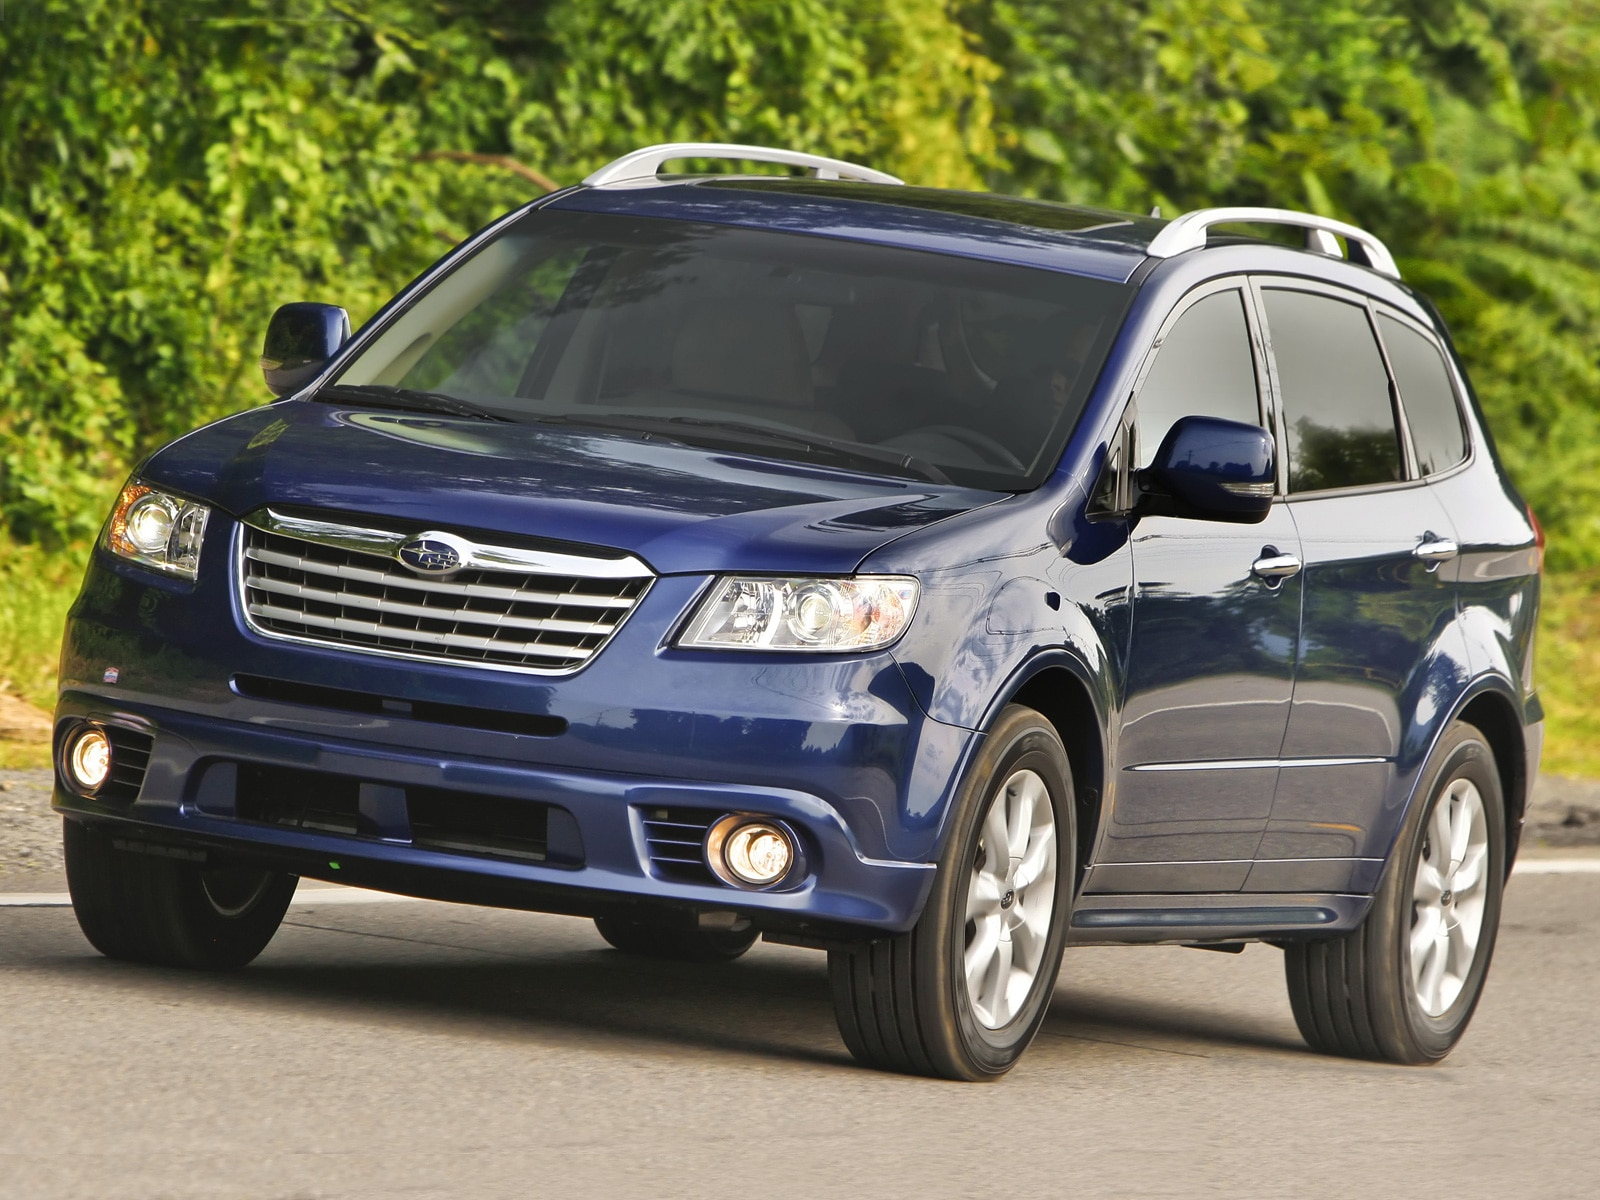 0911 17 Z 2010 Subaru Tribeca Touring Front Three Quarter View